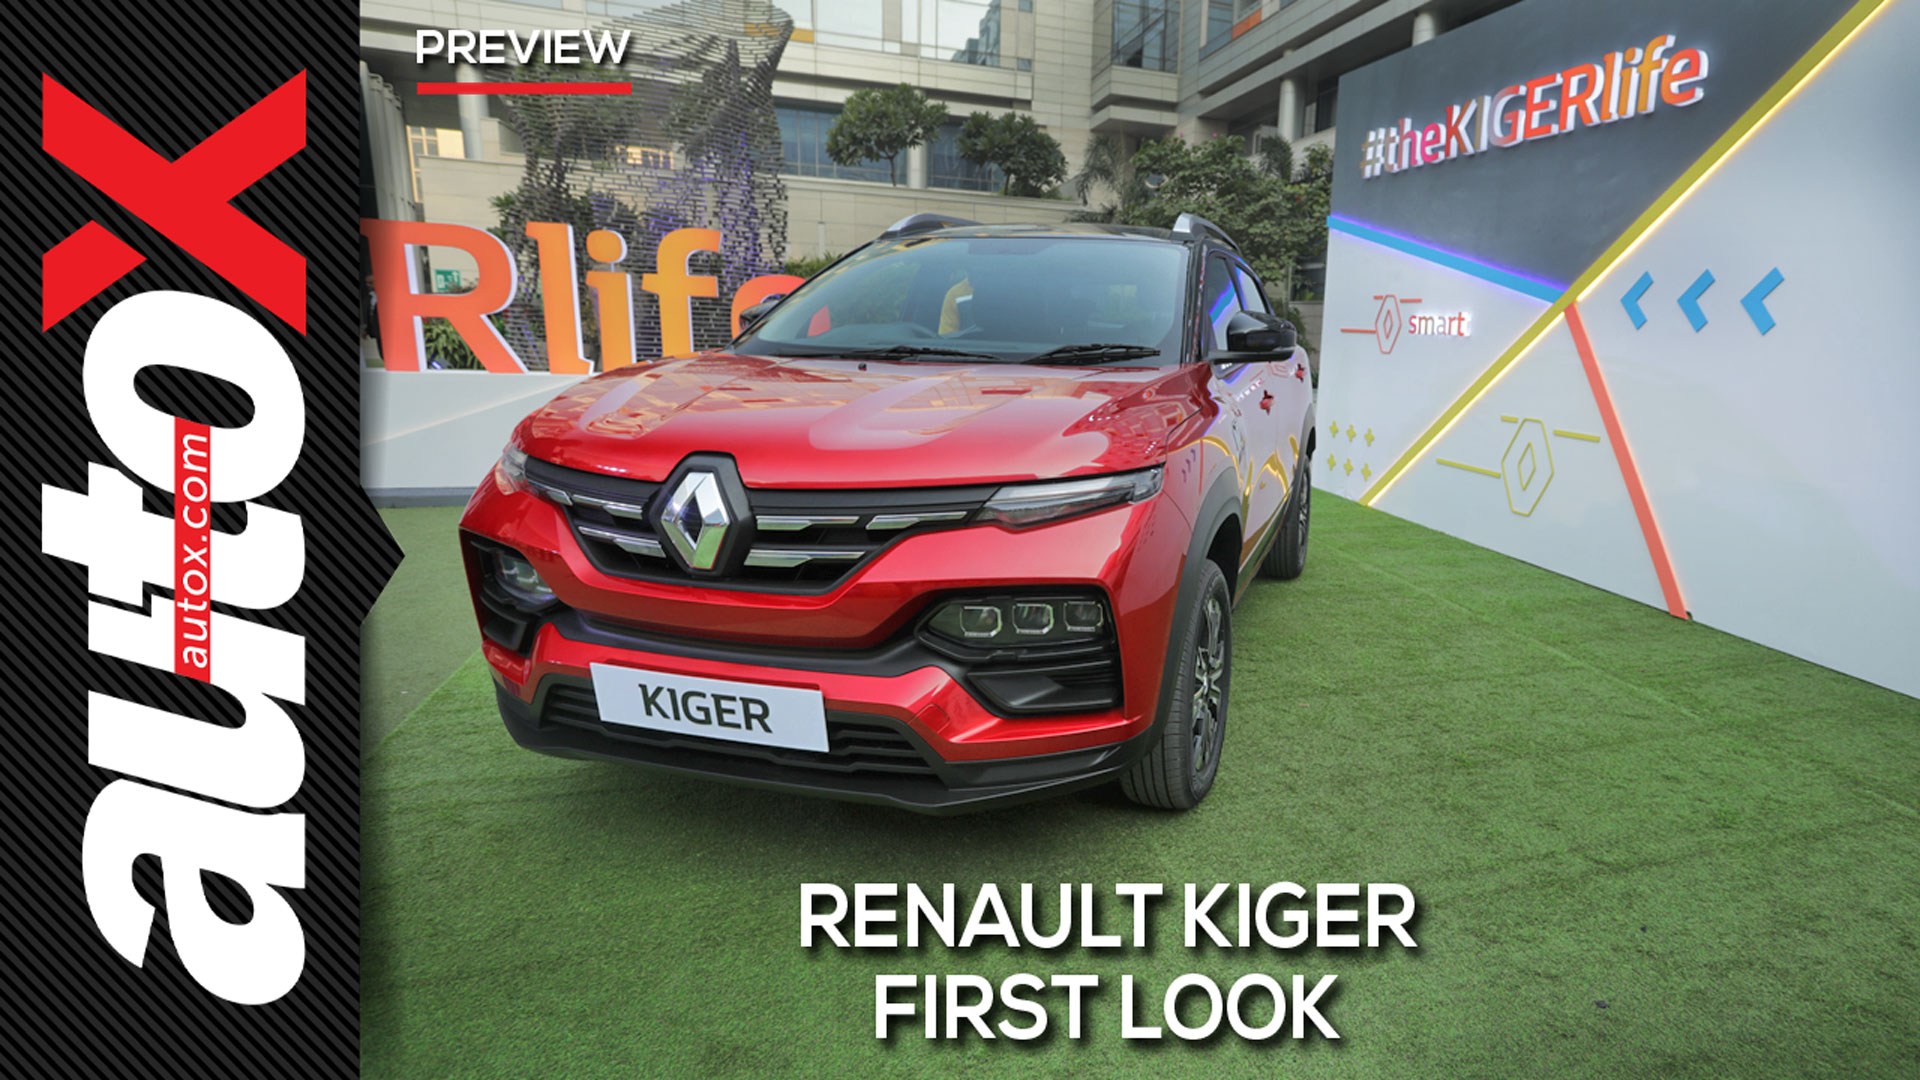 Renault Kiger SUV   Preview   autoX